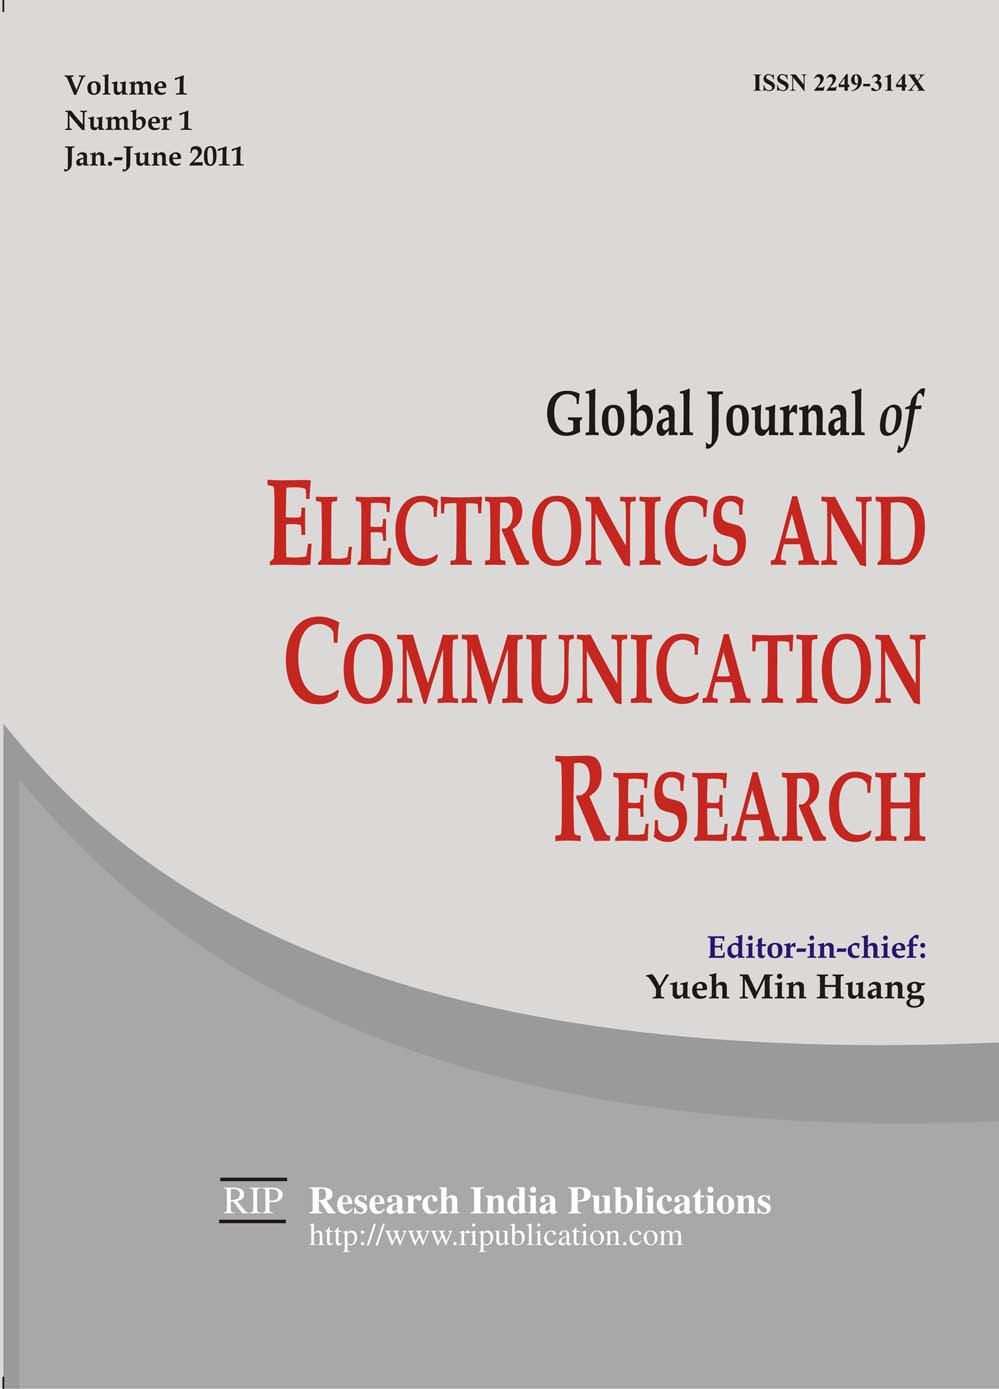 Research papers on electronics